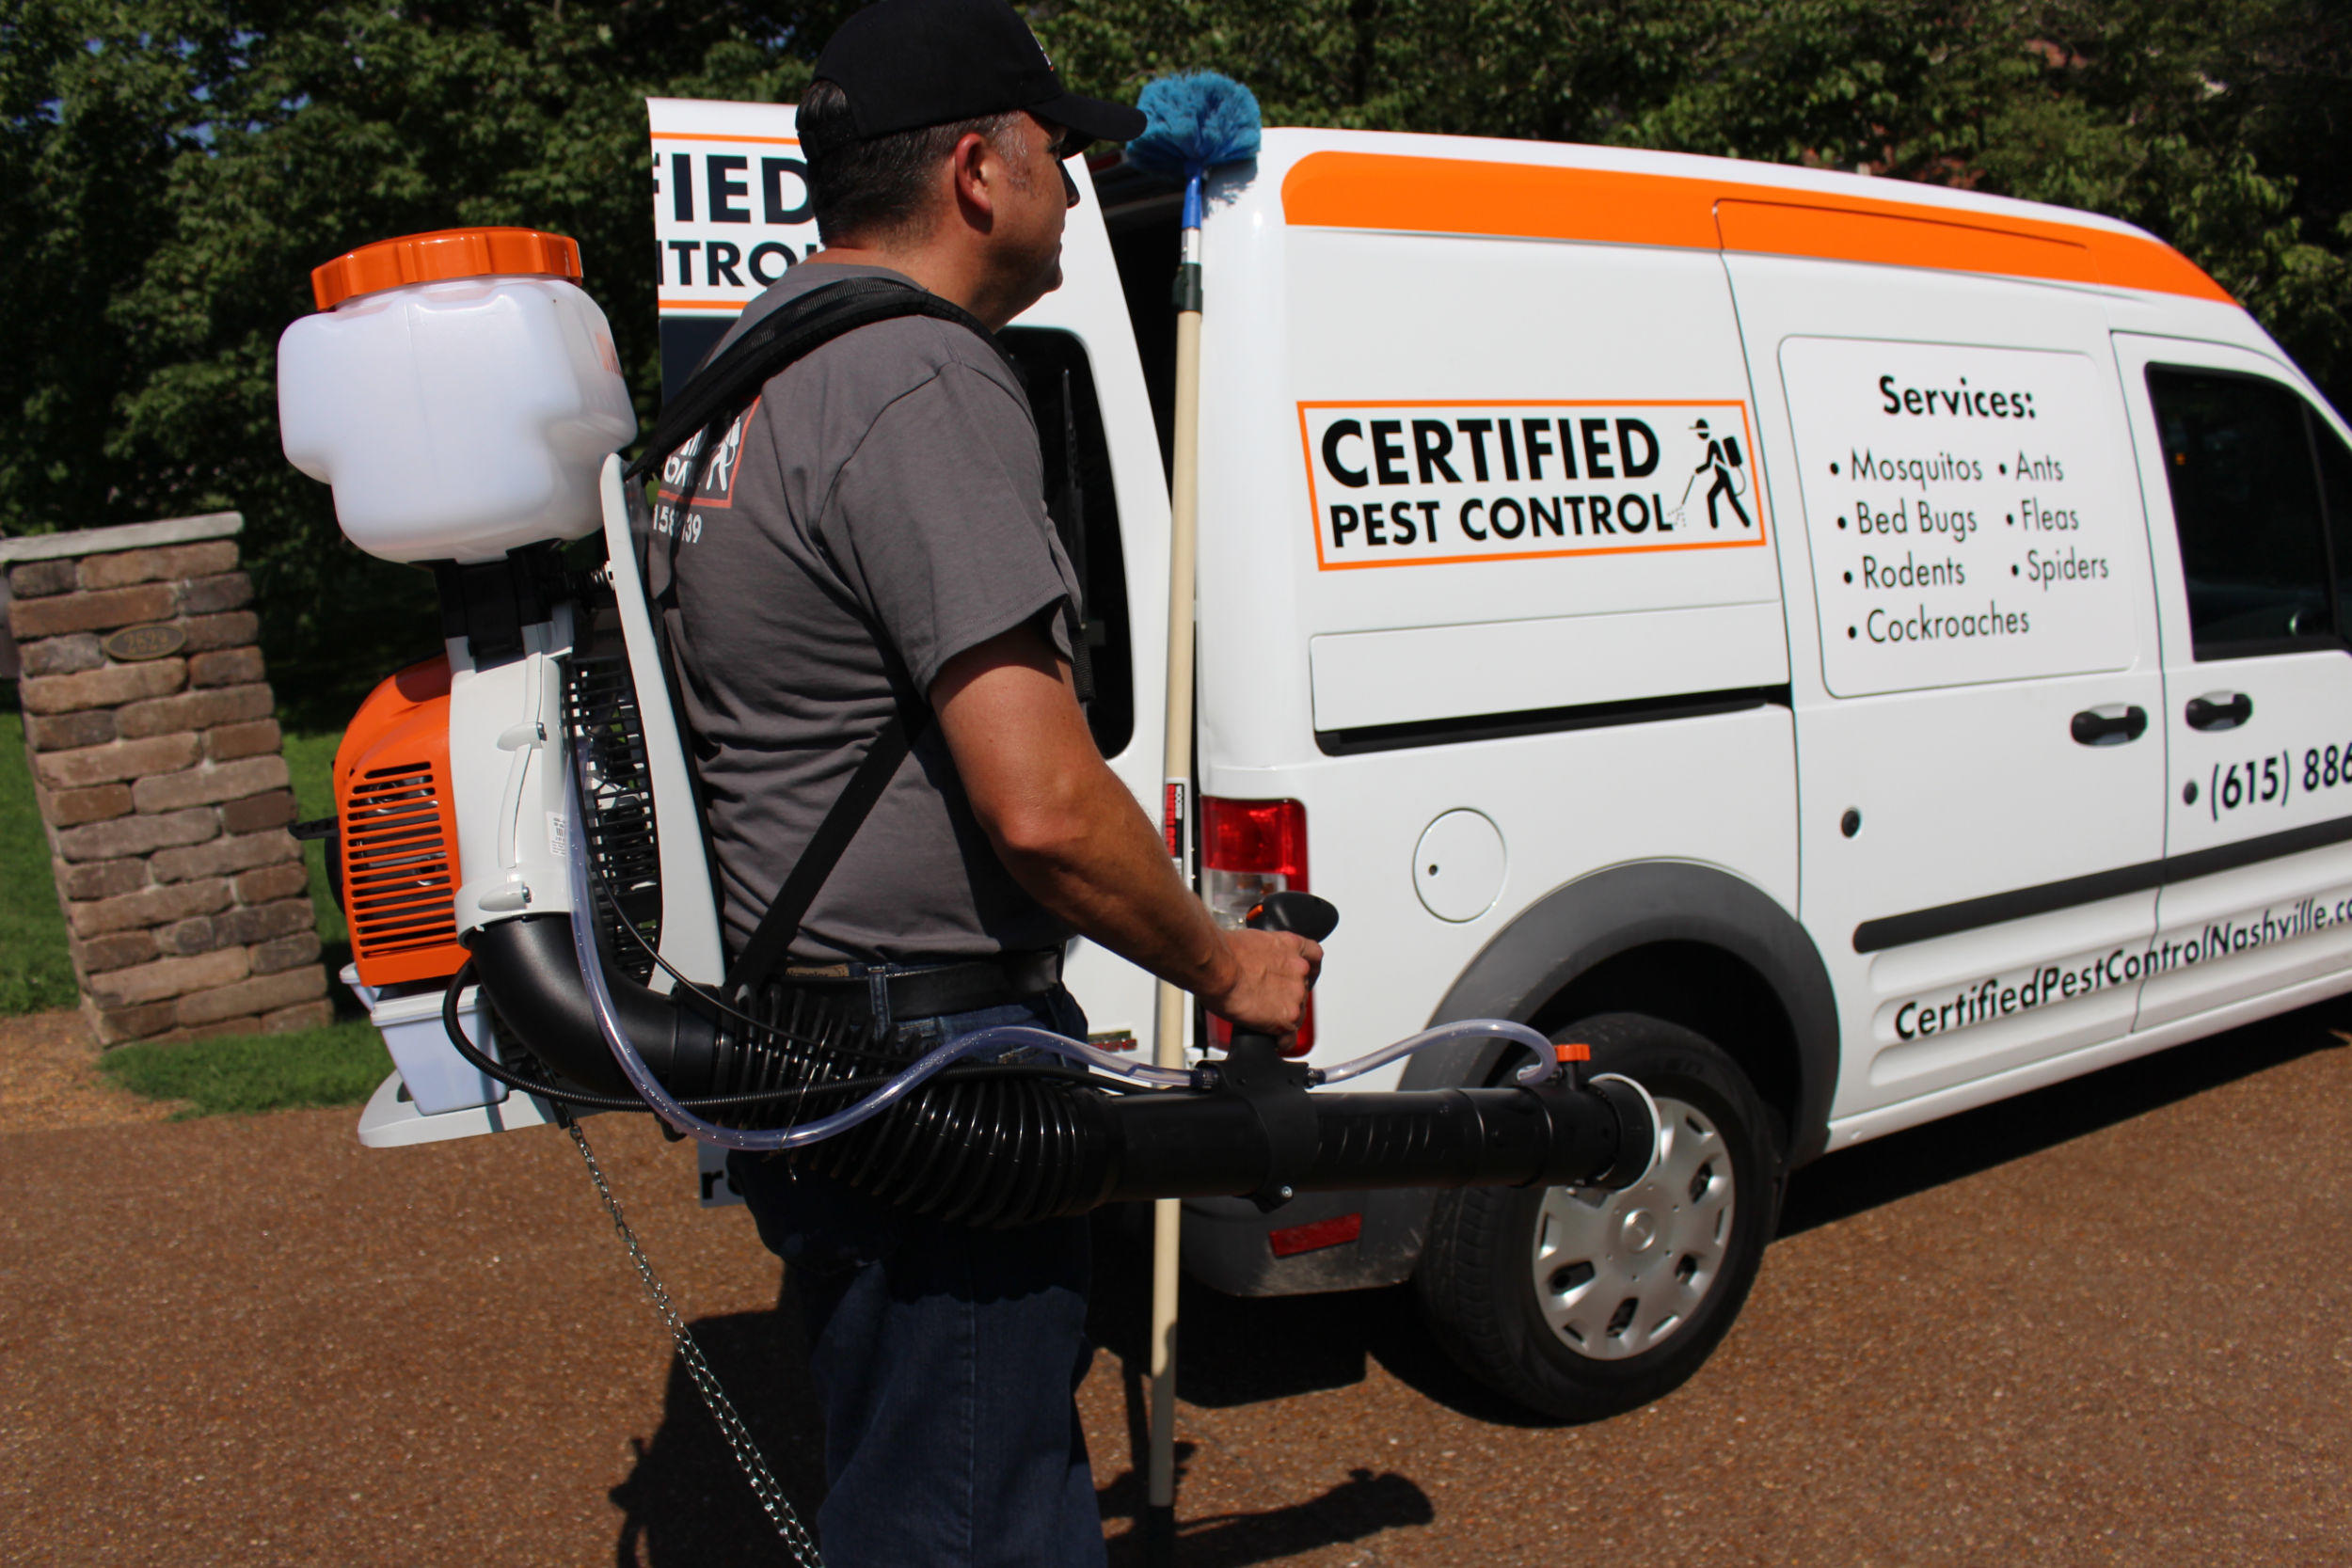 Certified Pest Control image 1